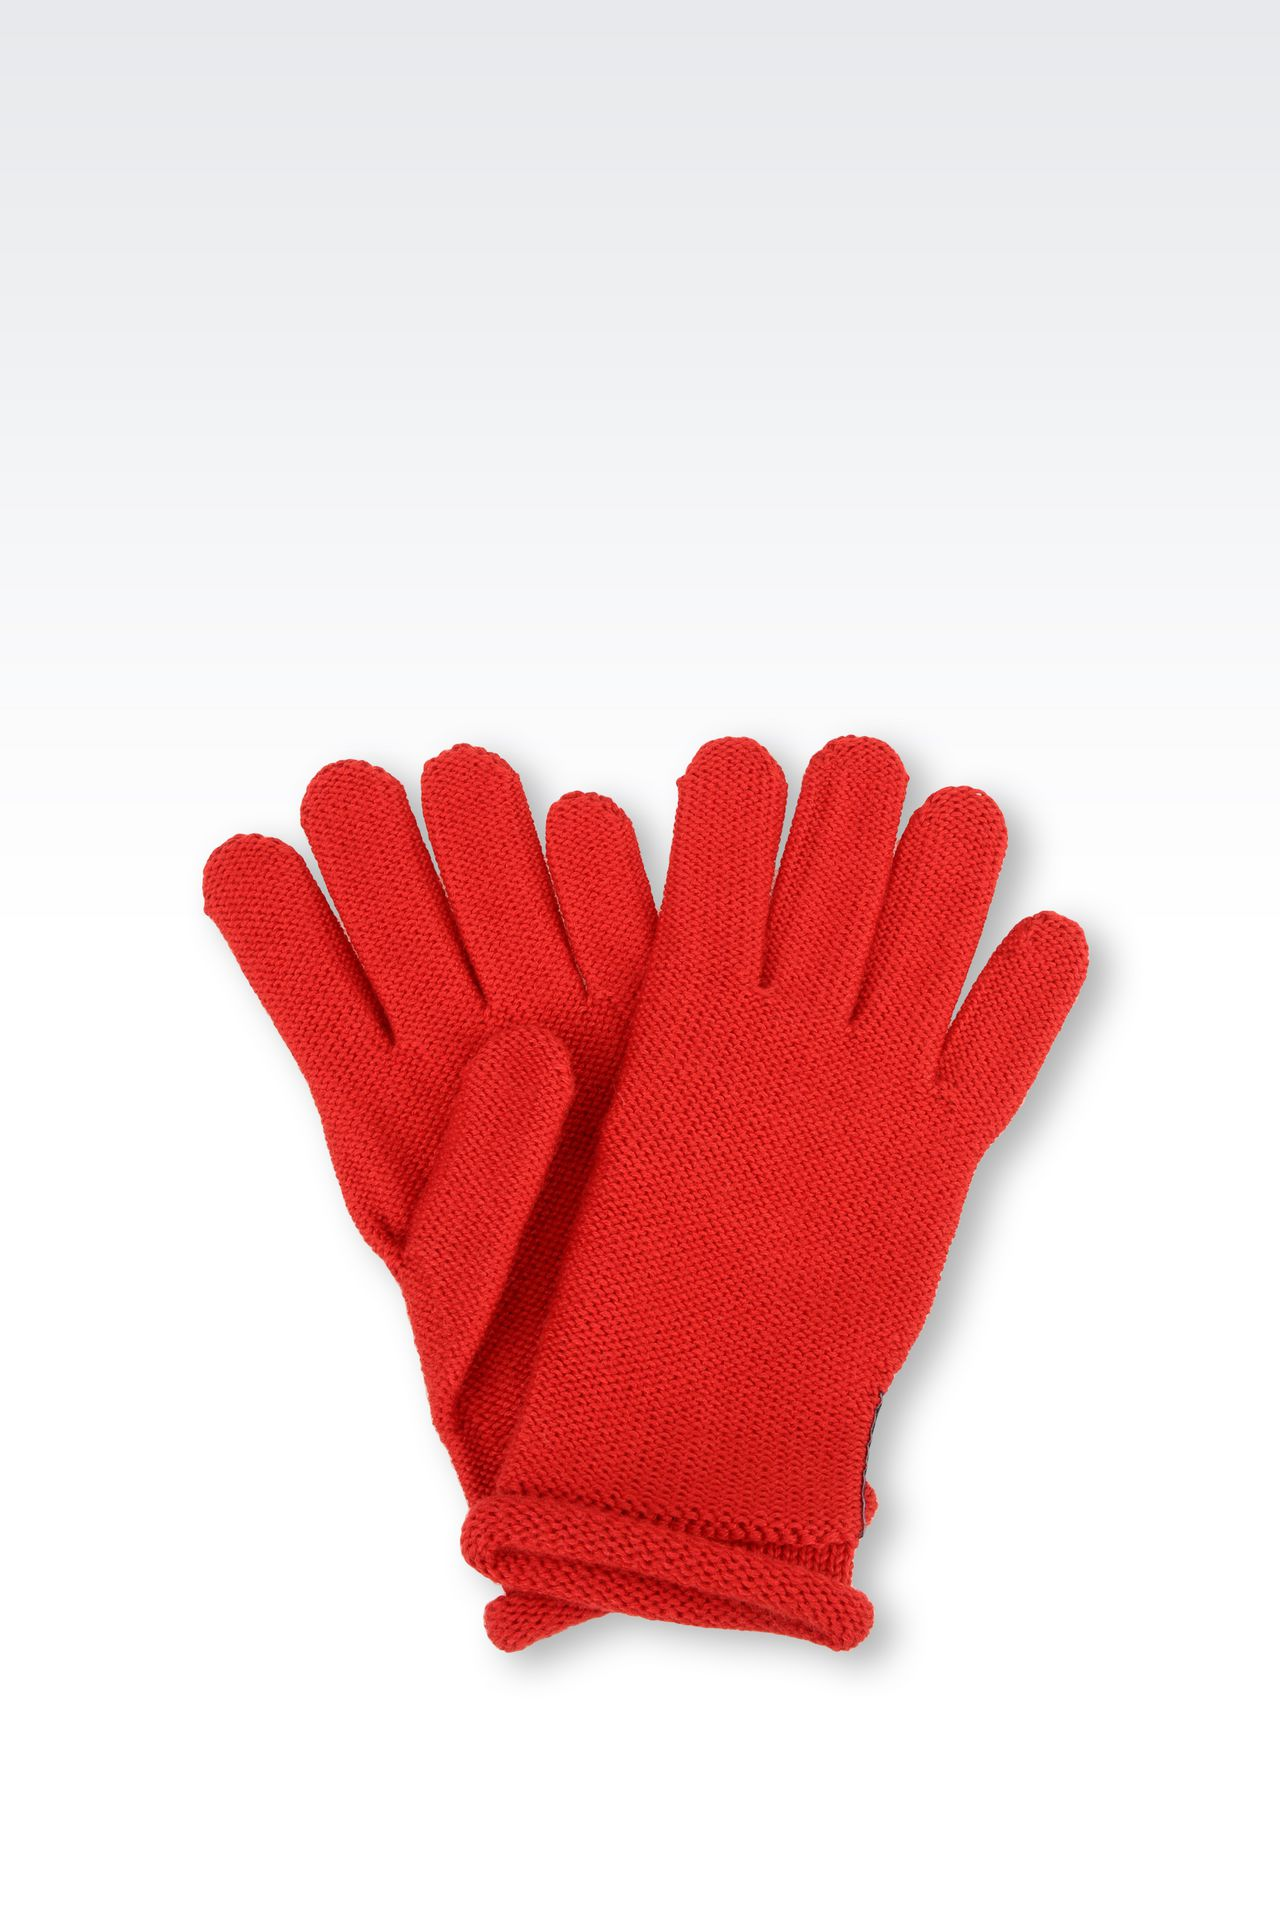 WOOL BLEND GLOVE WITH RHINESTONE LOGO: Gloves Women by Armani - 0